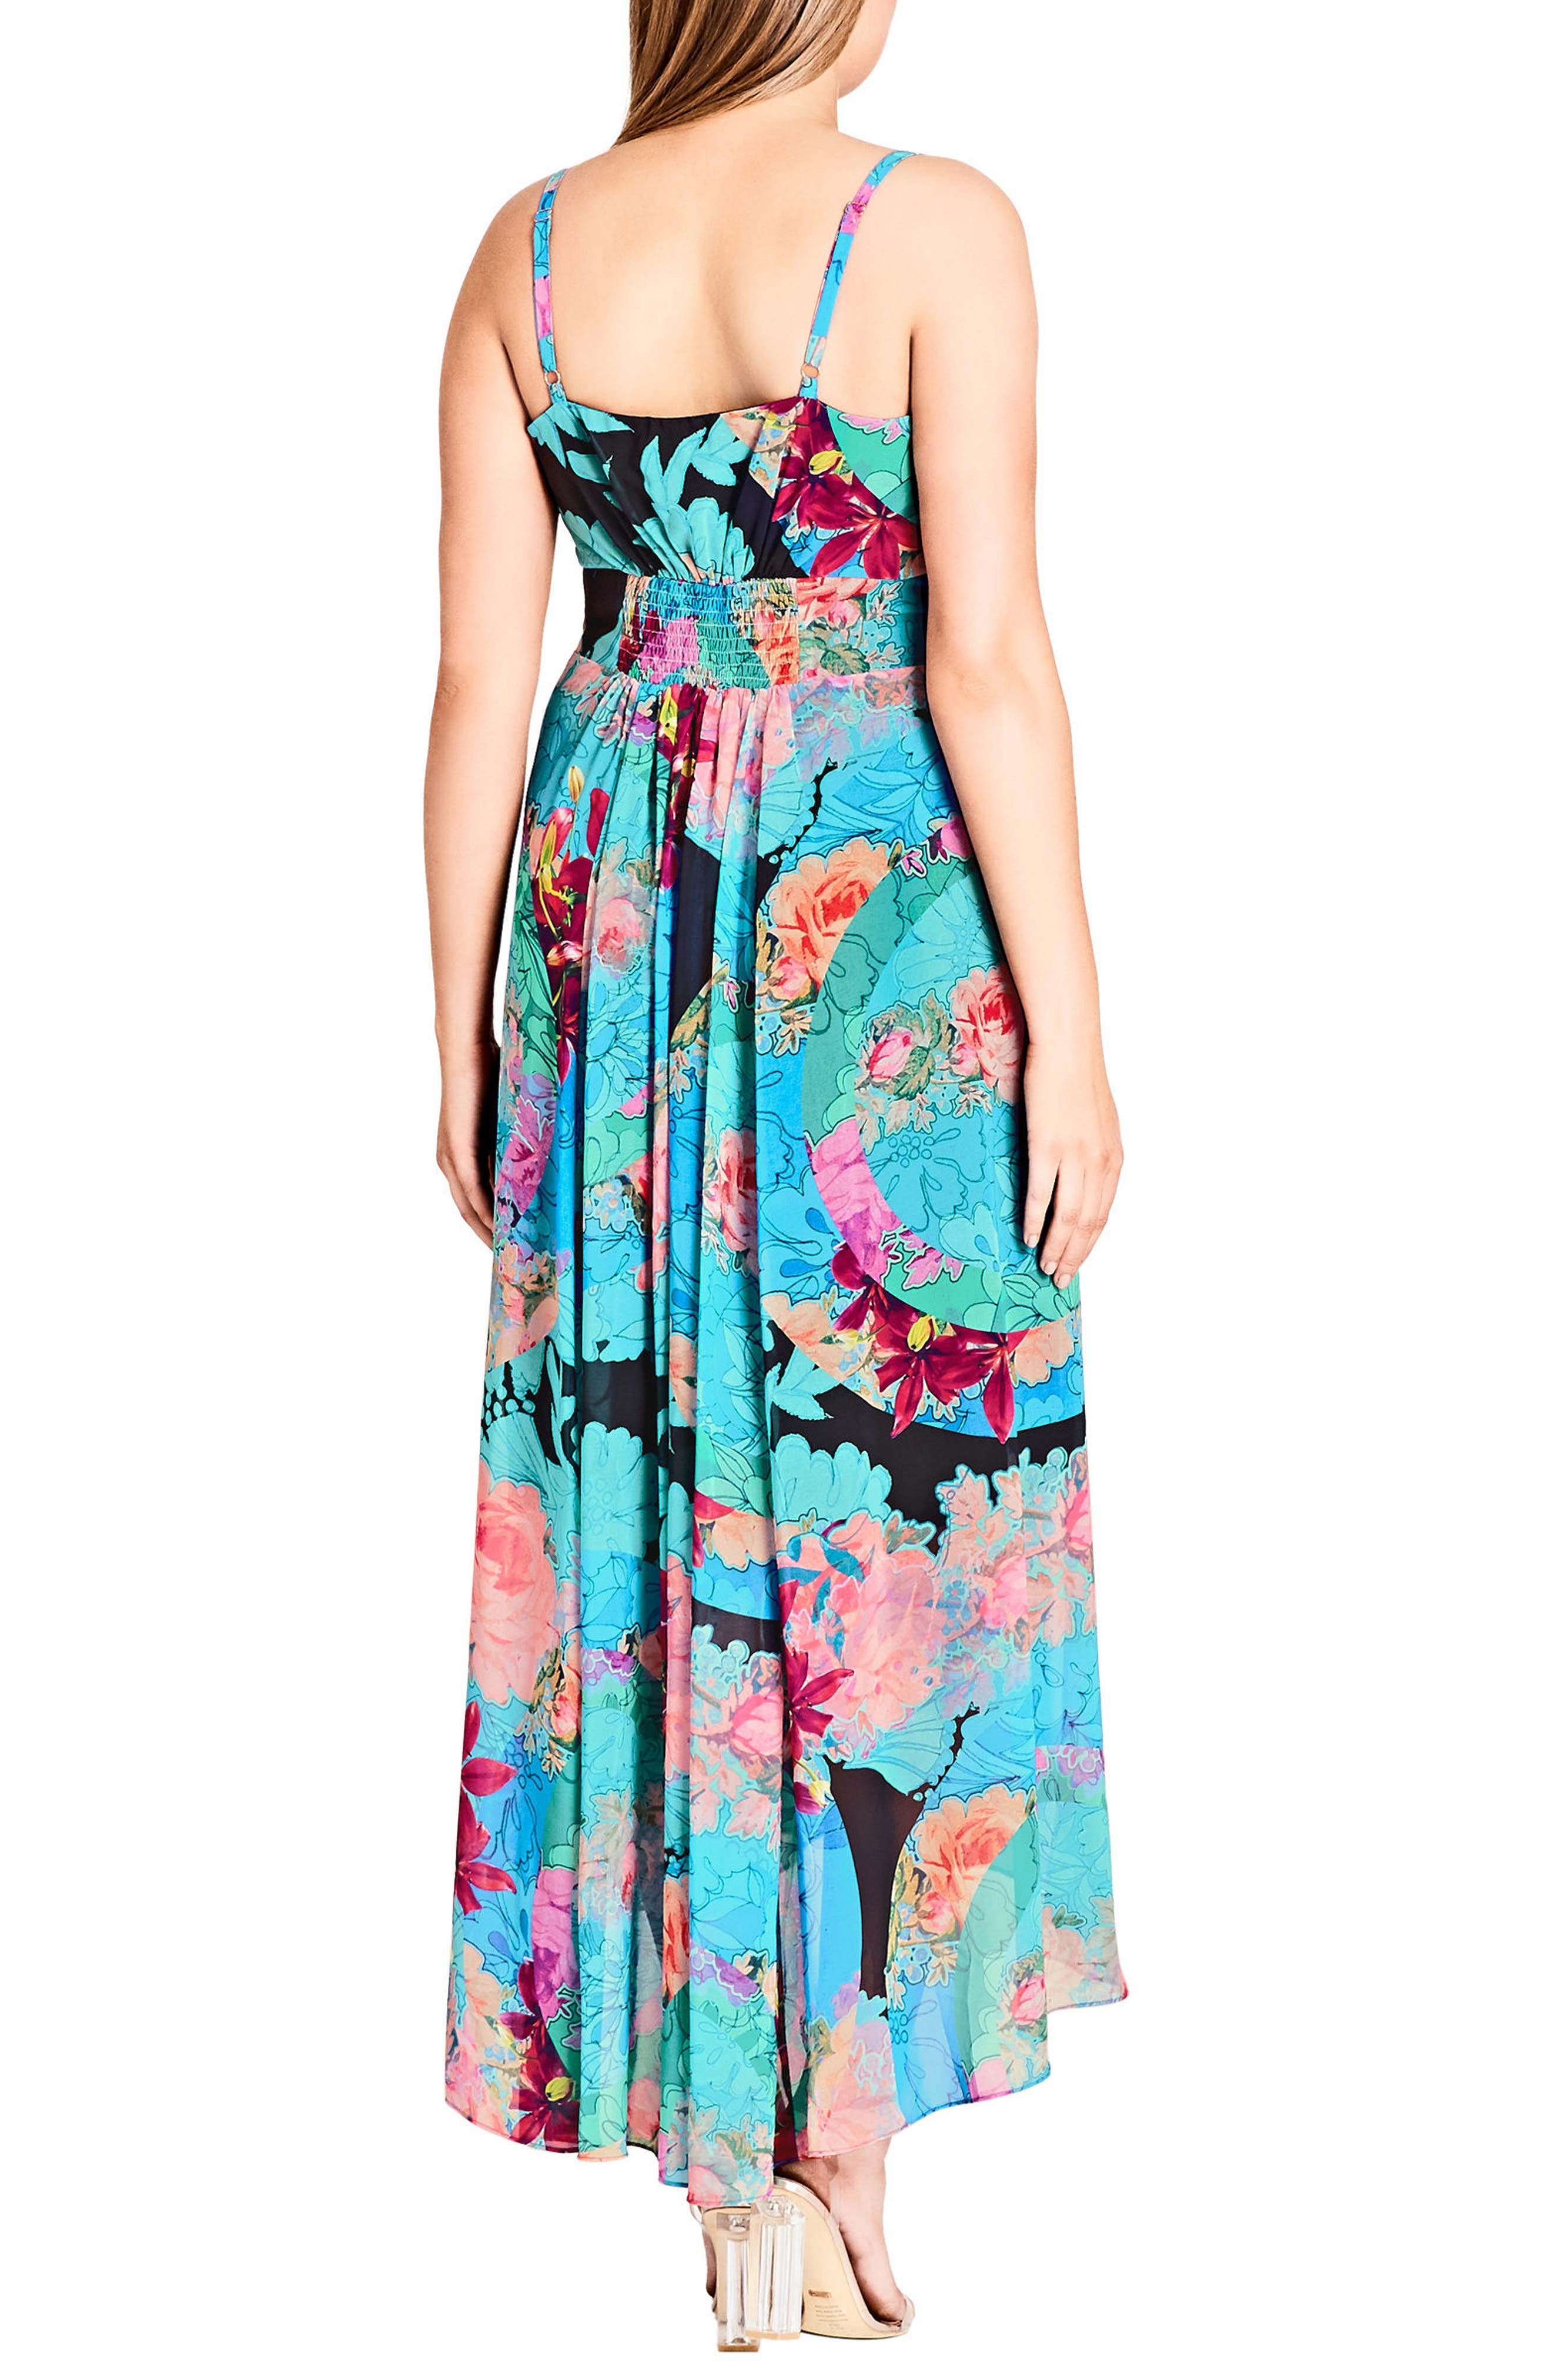 Looking Glass Maxi Dress,                             Alternate thumbnail 2, color,                             LOOKING GLASS